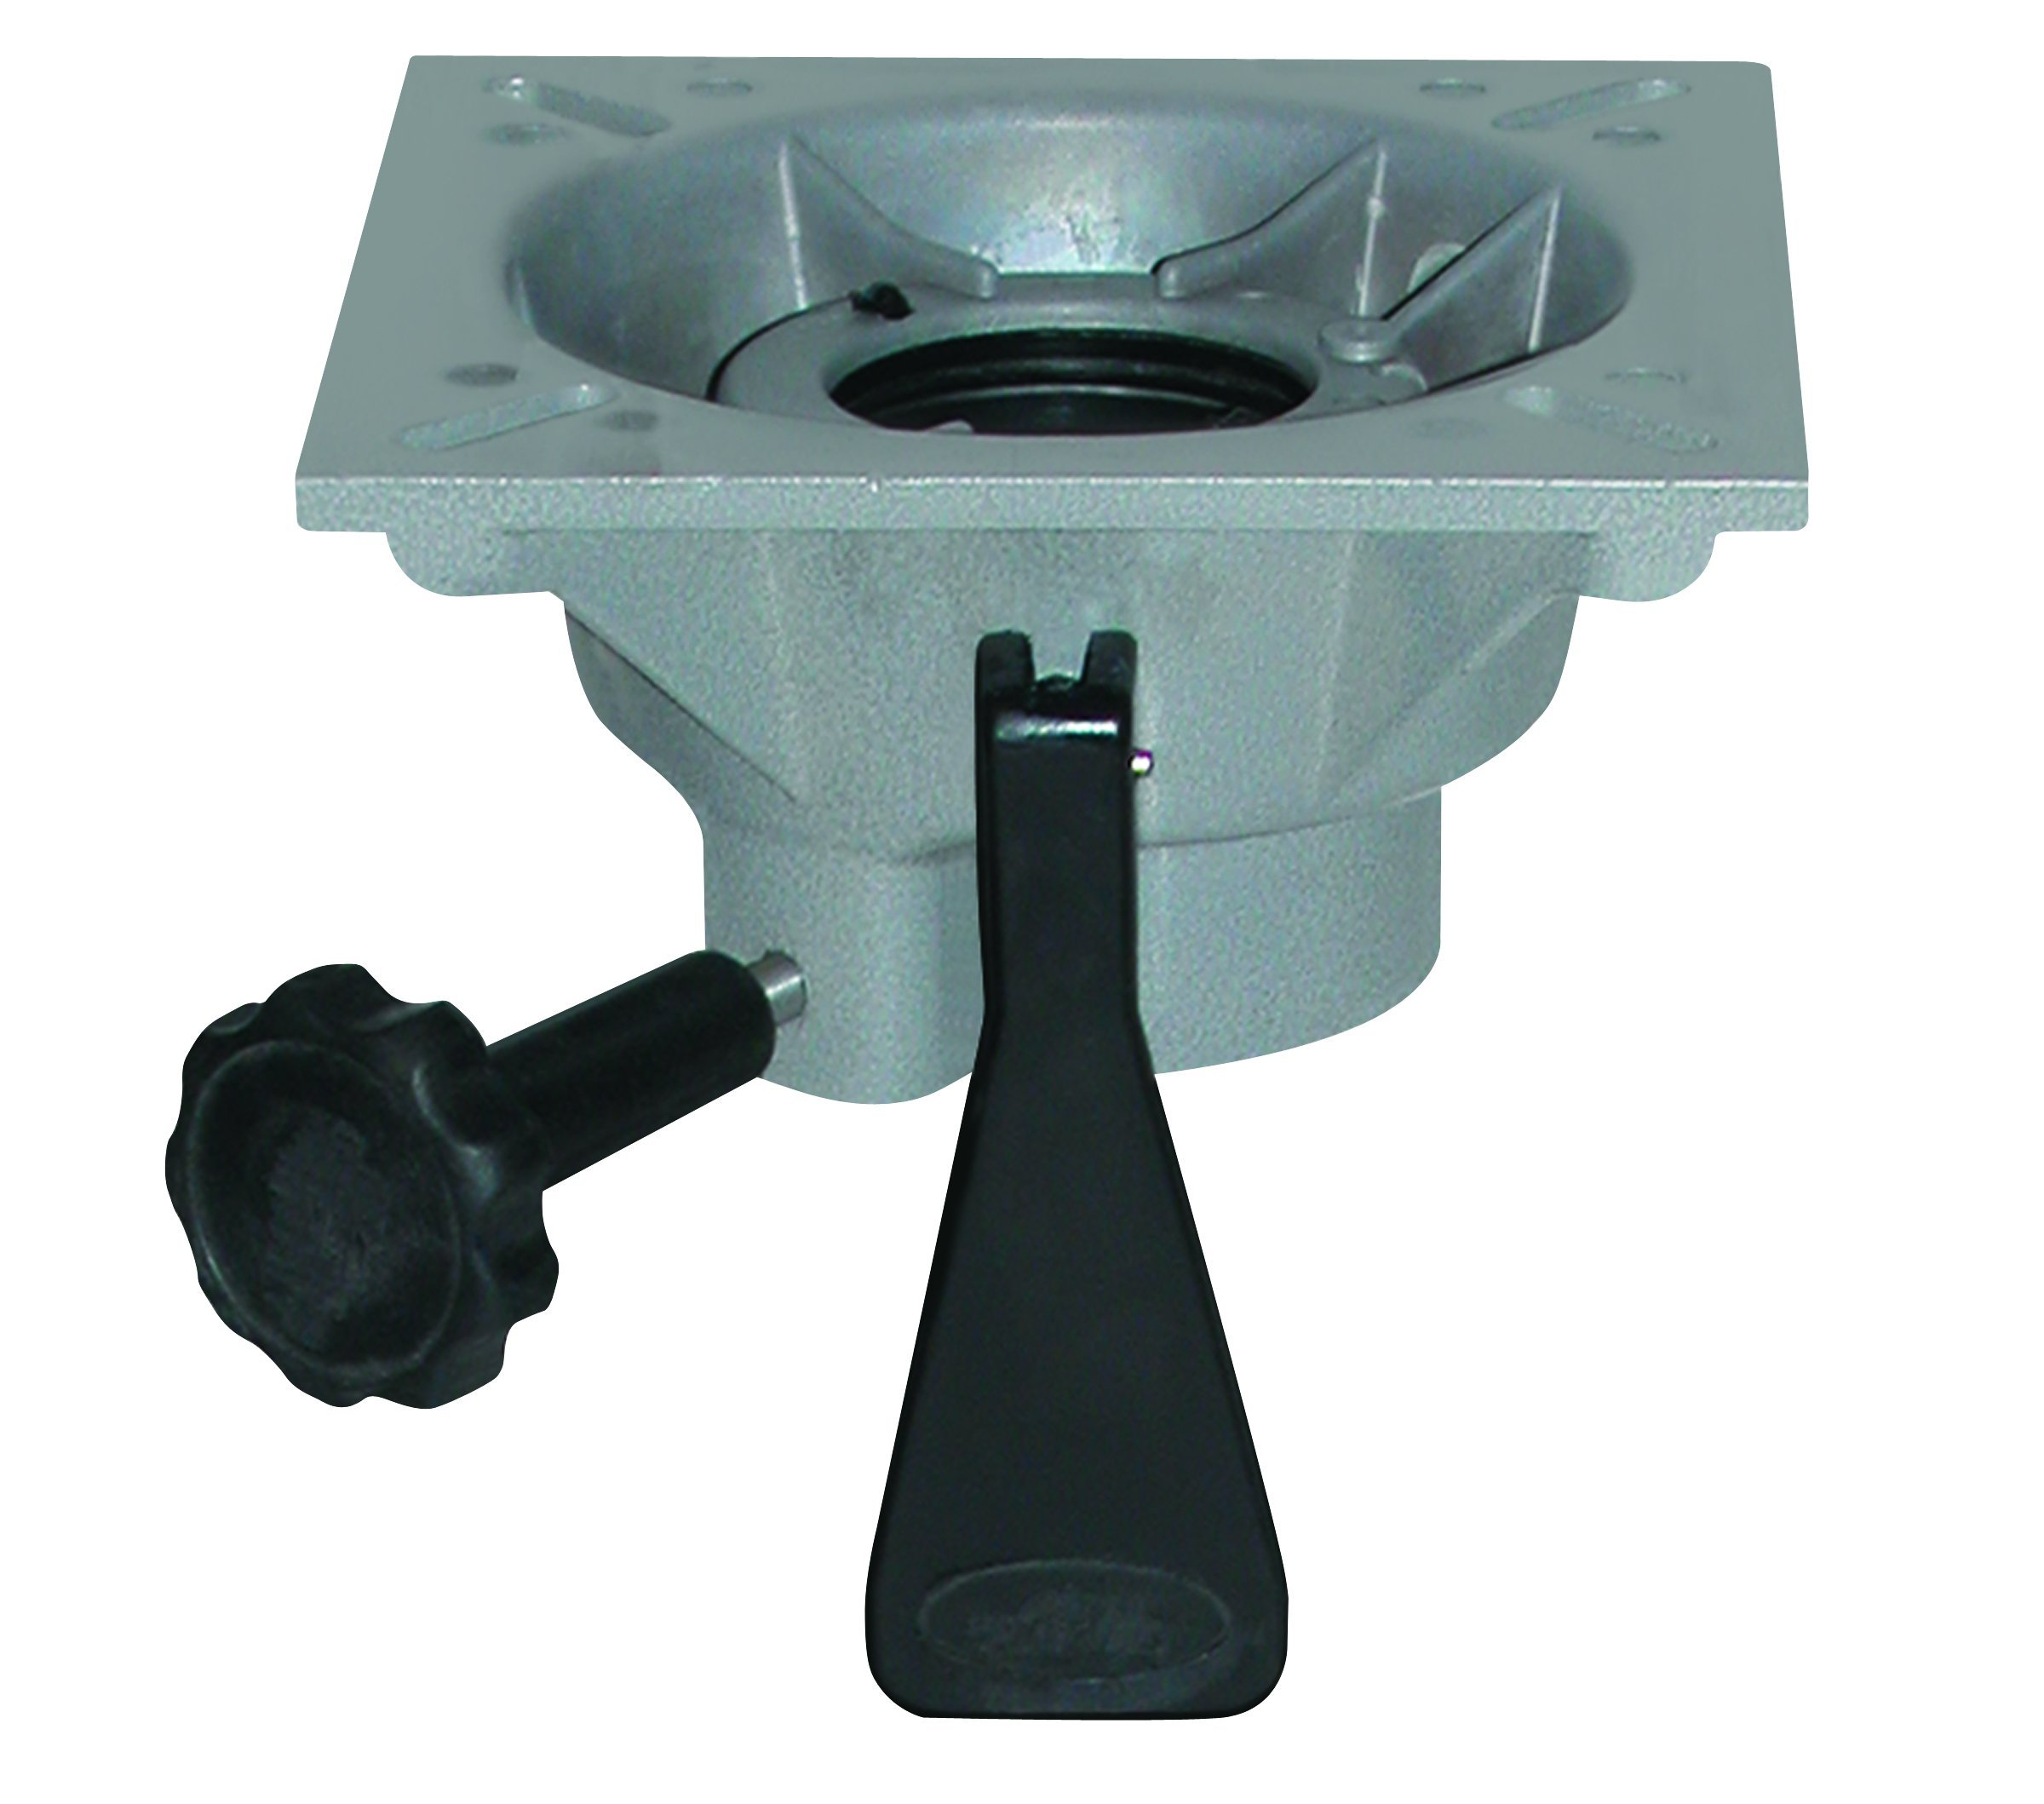 Wise 8WP95 Cast Seat Mount Spider, Fits 2 3/8'' Pedestal